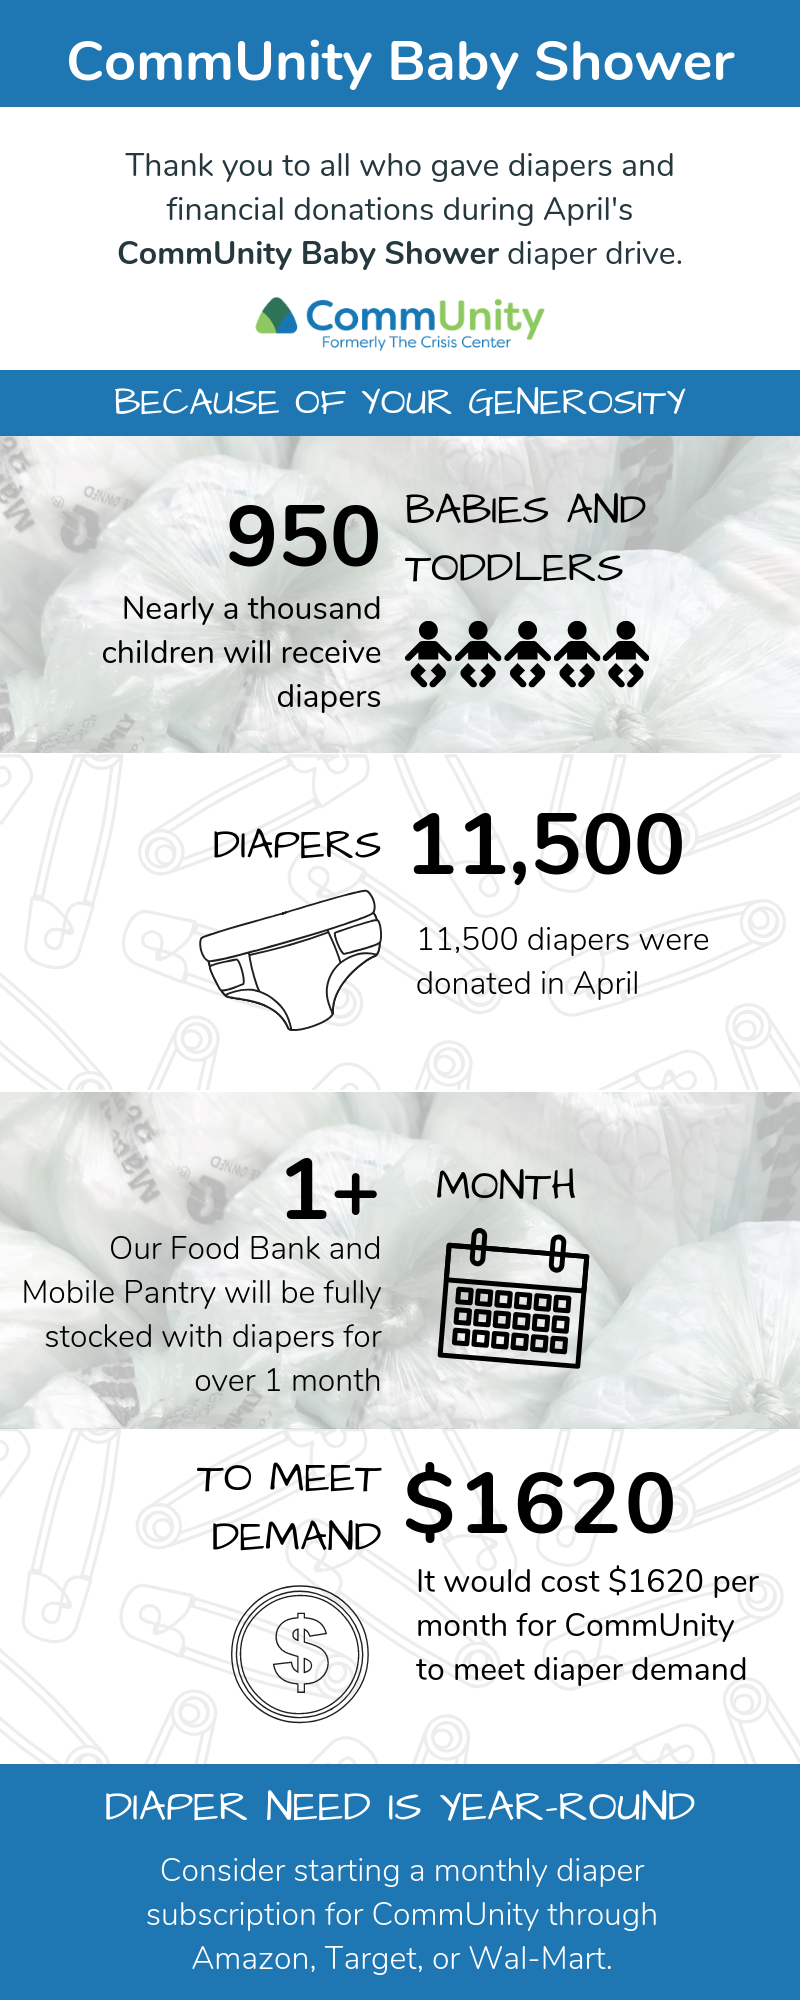 11,5000 diapers equals 950 babies and toddlers provided with diapers, or over 1 month's supply to fill our Food Bank and Mobile Pantry